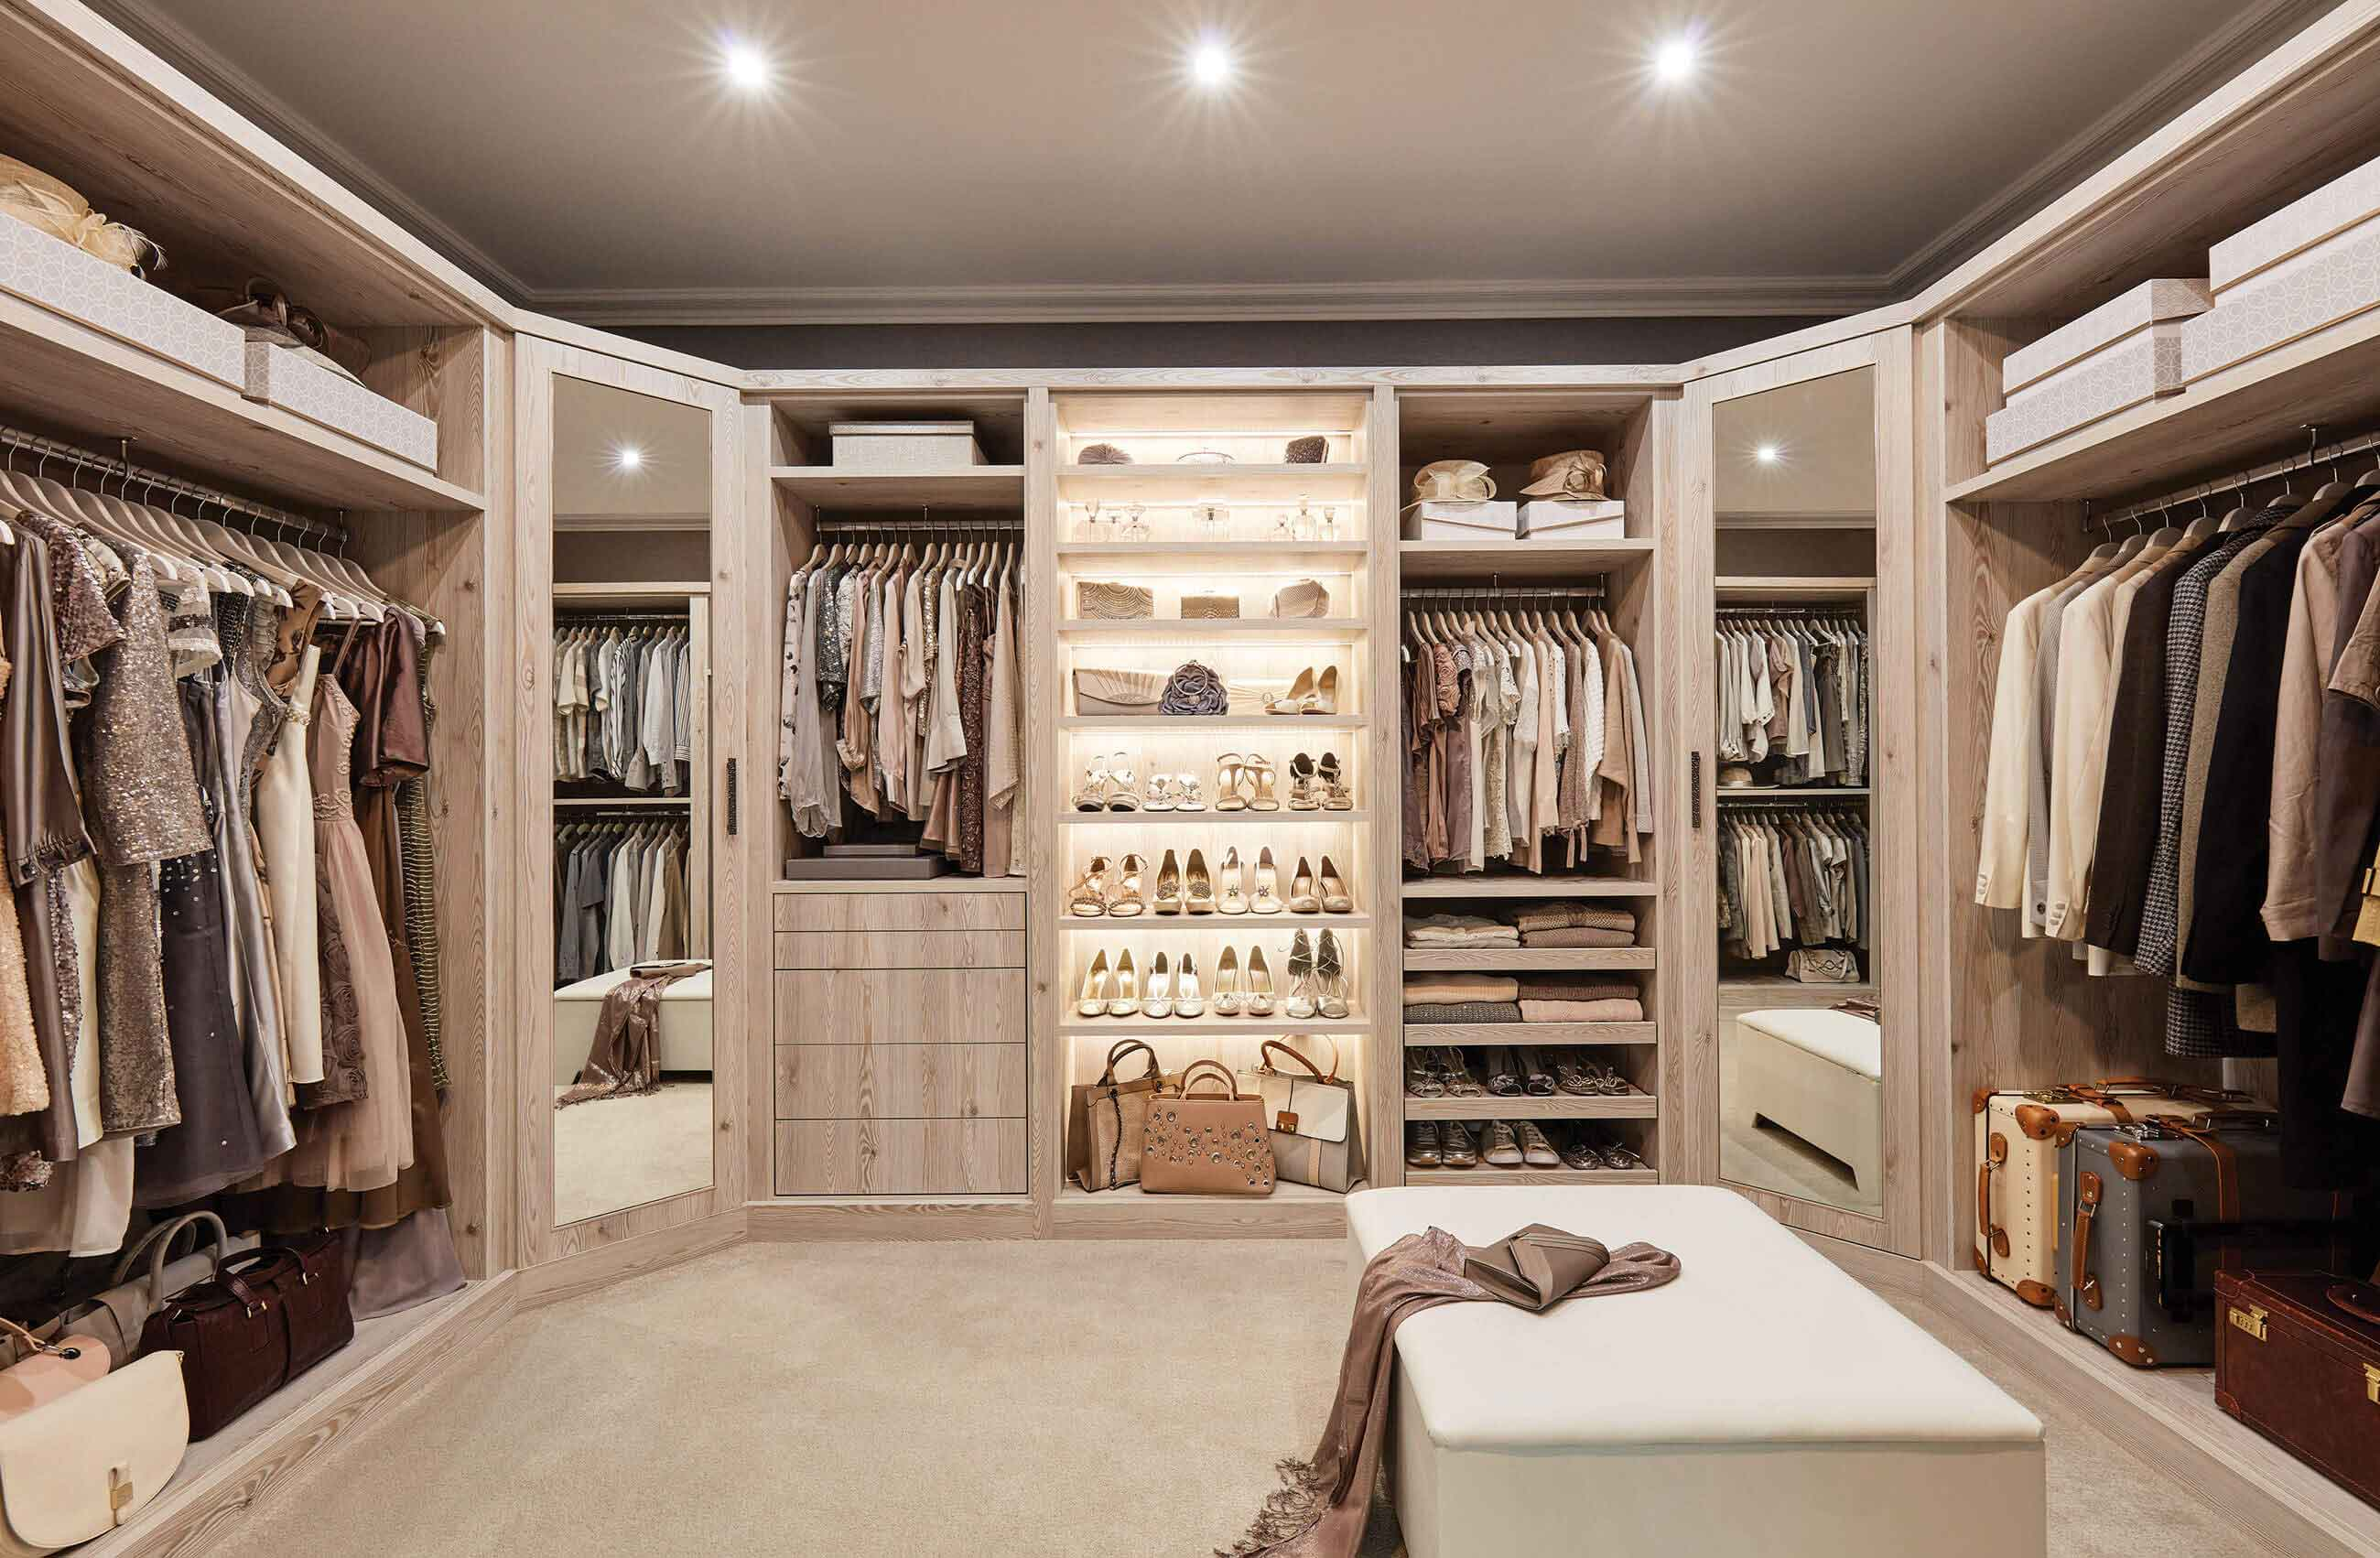 What are fitted wardrobes?